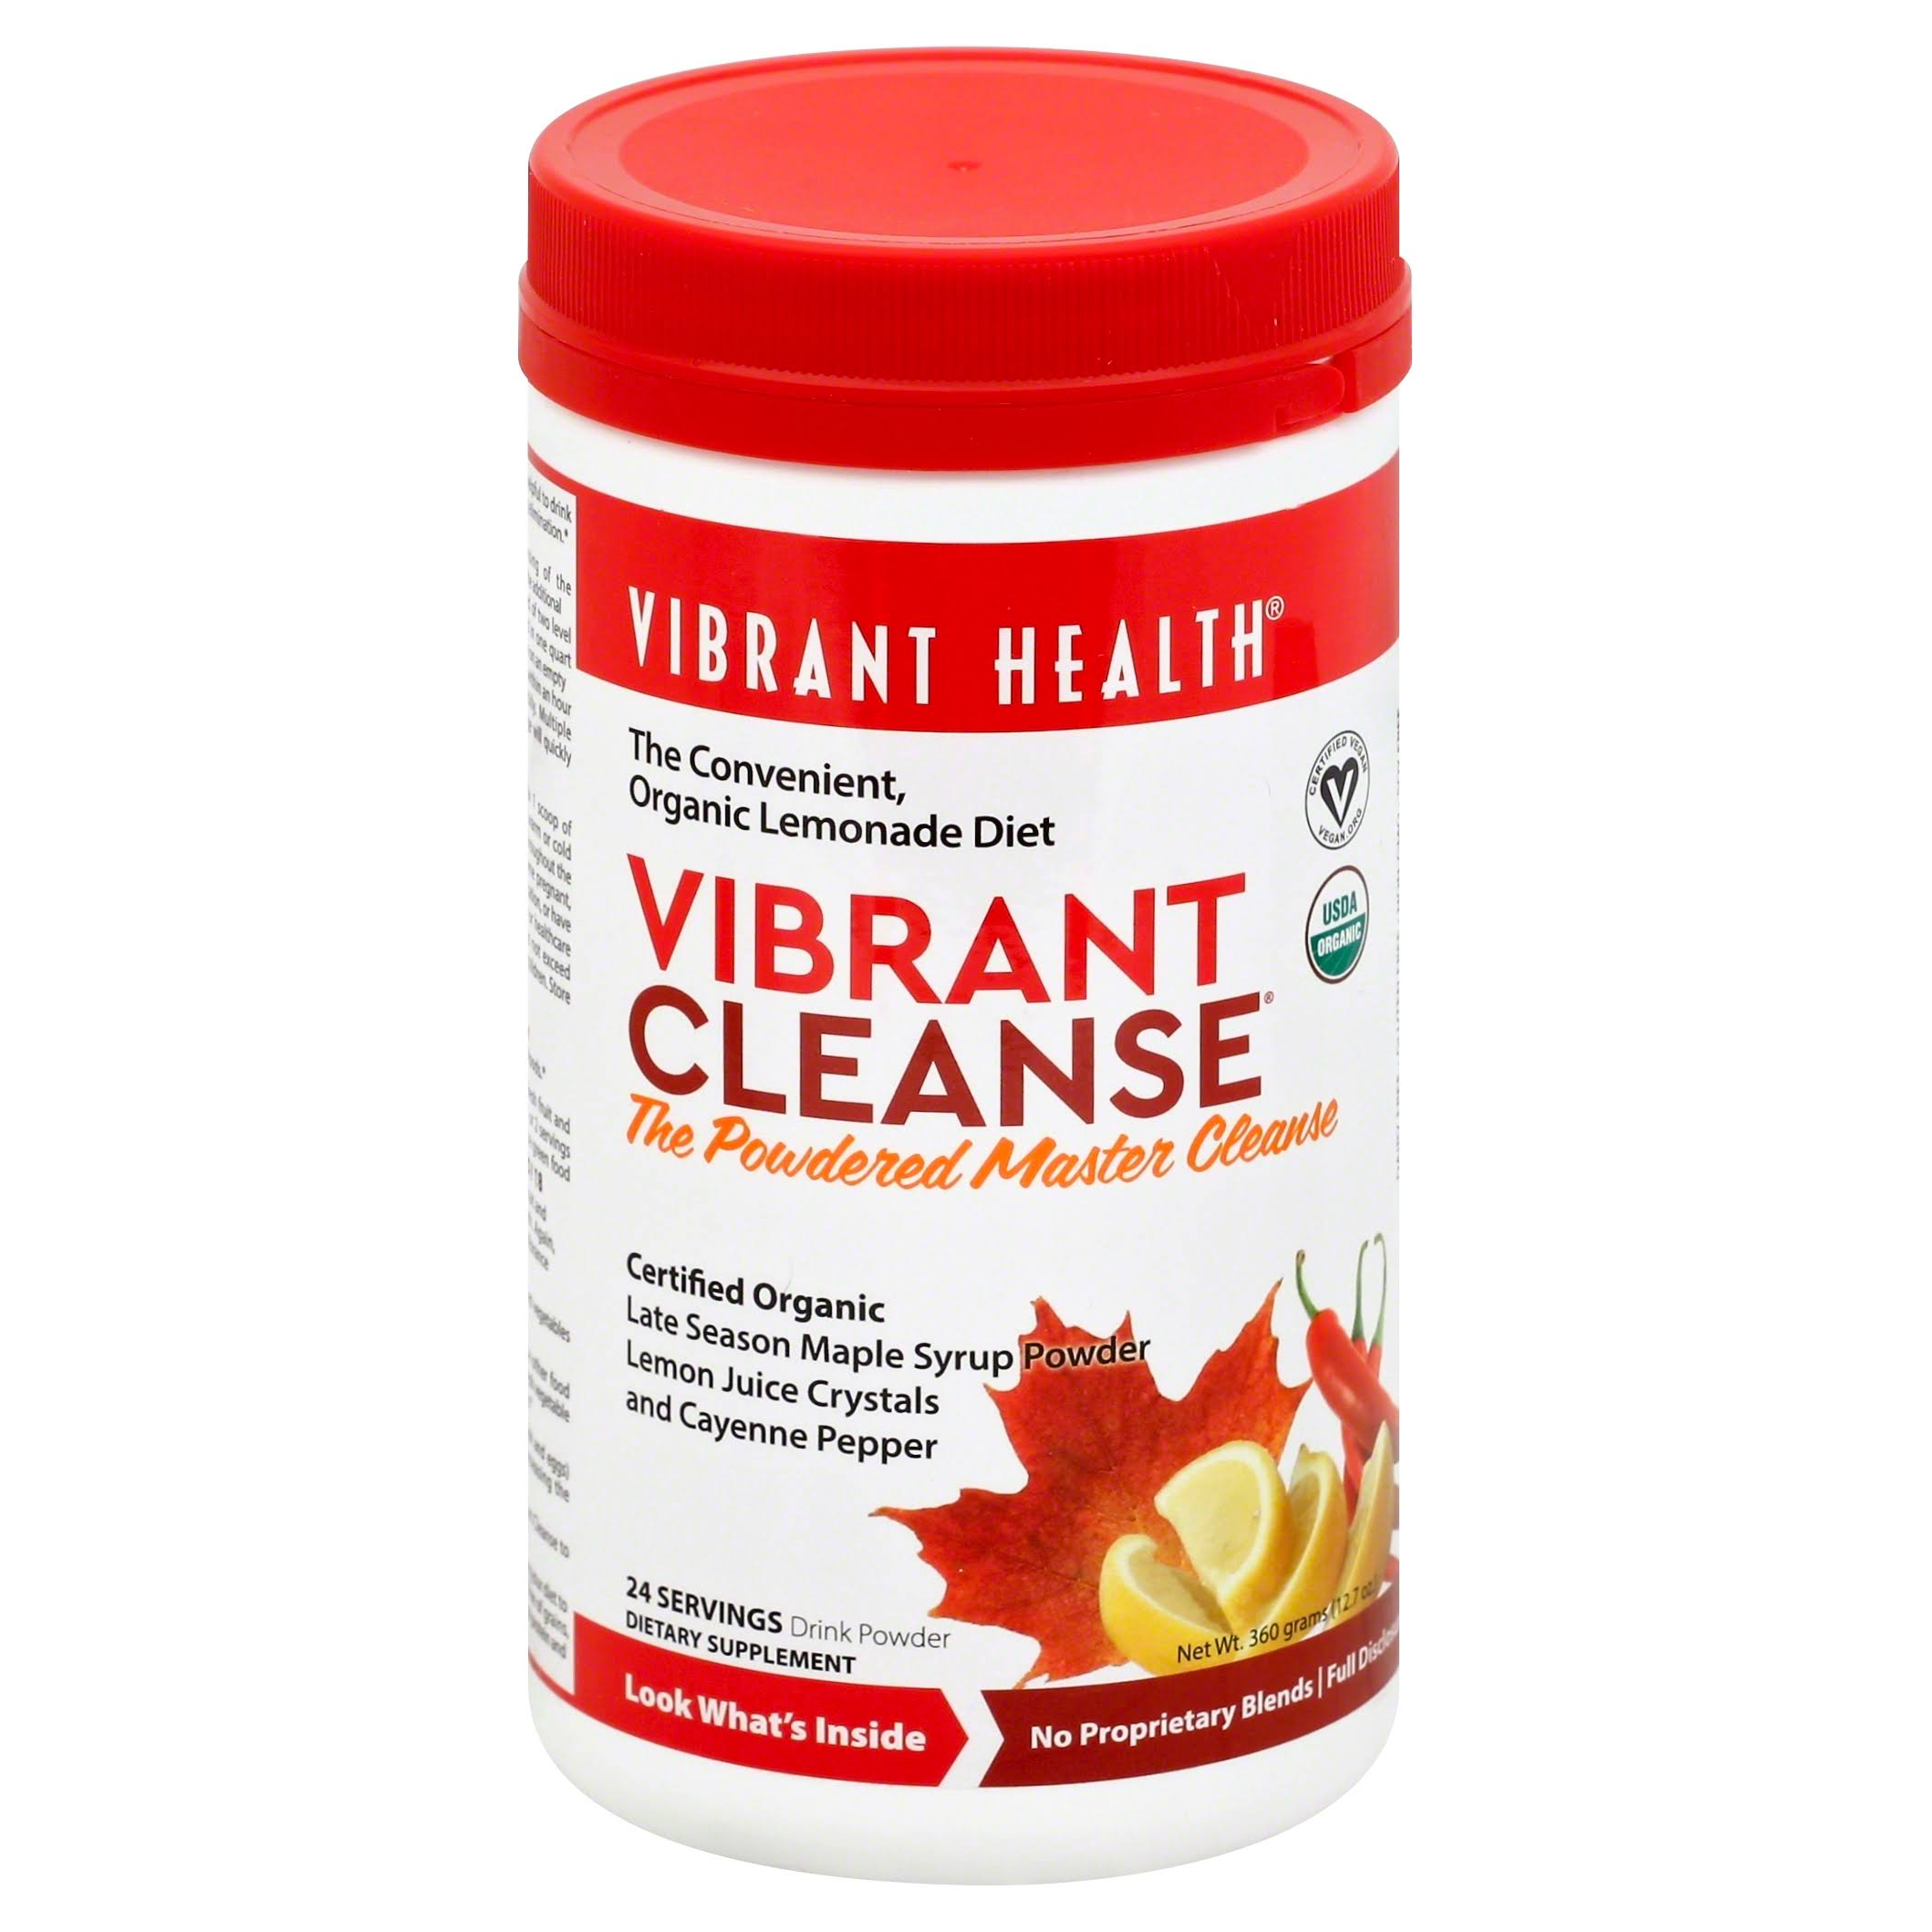 Vibrant Health Vibrant Cleanse Powder - 12.7oz